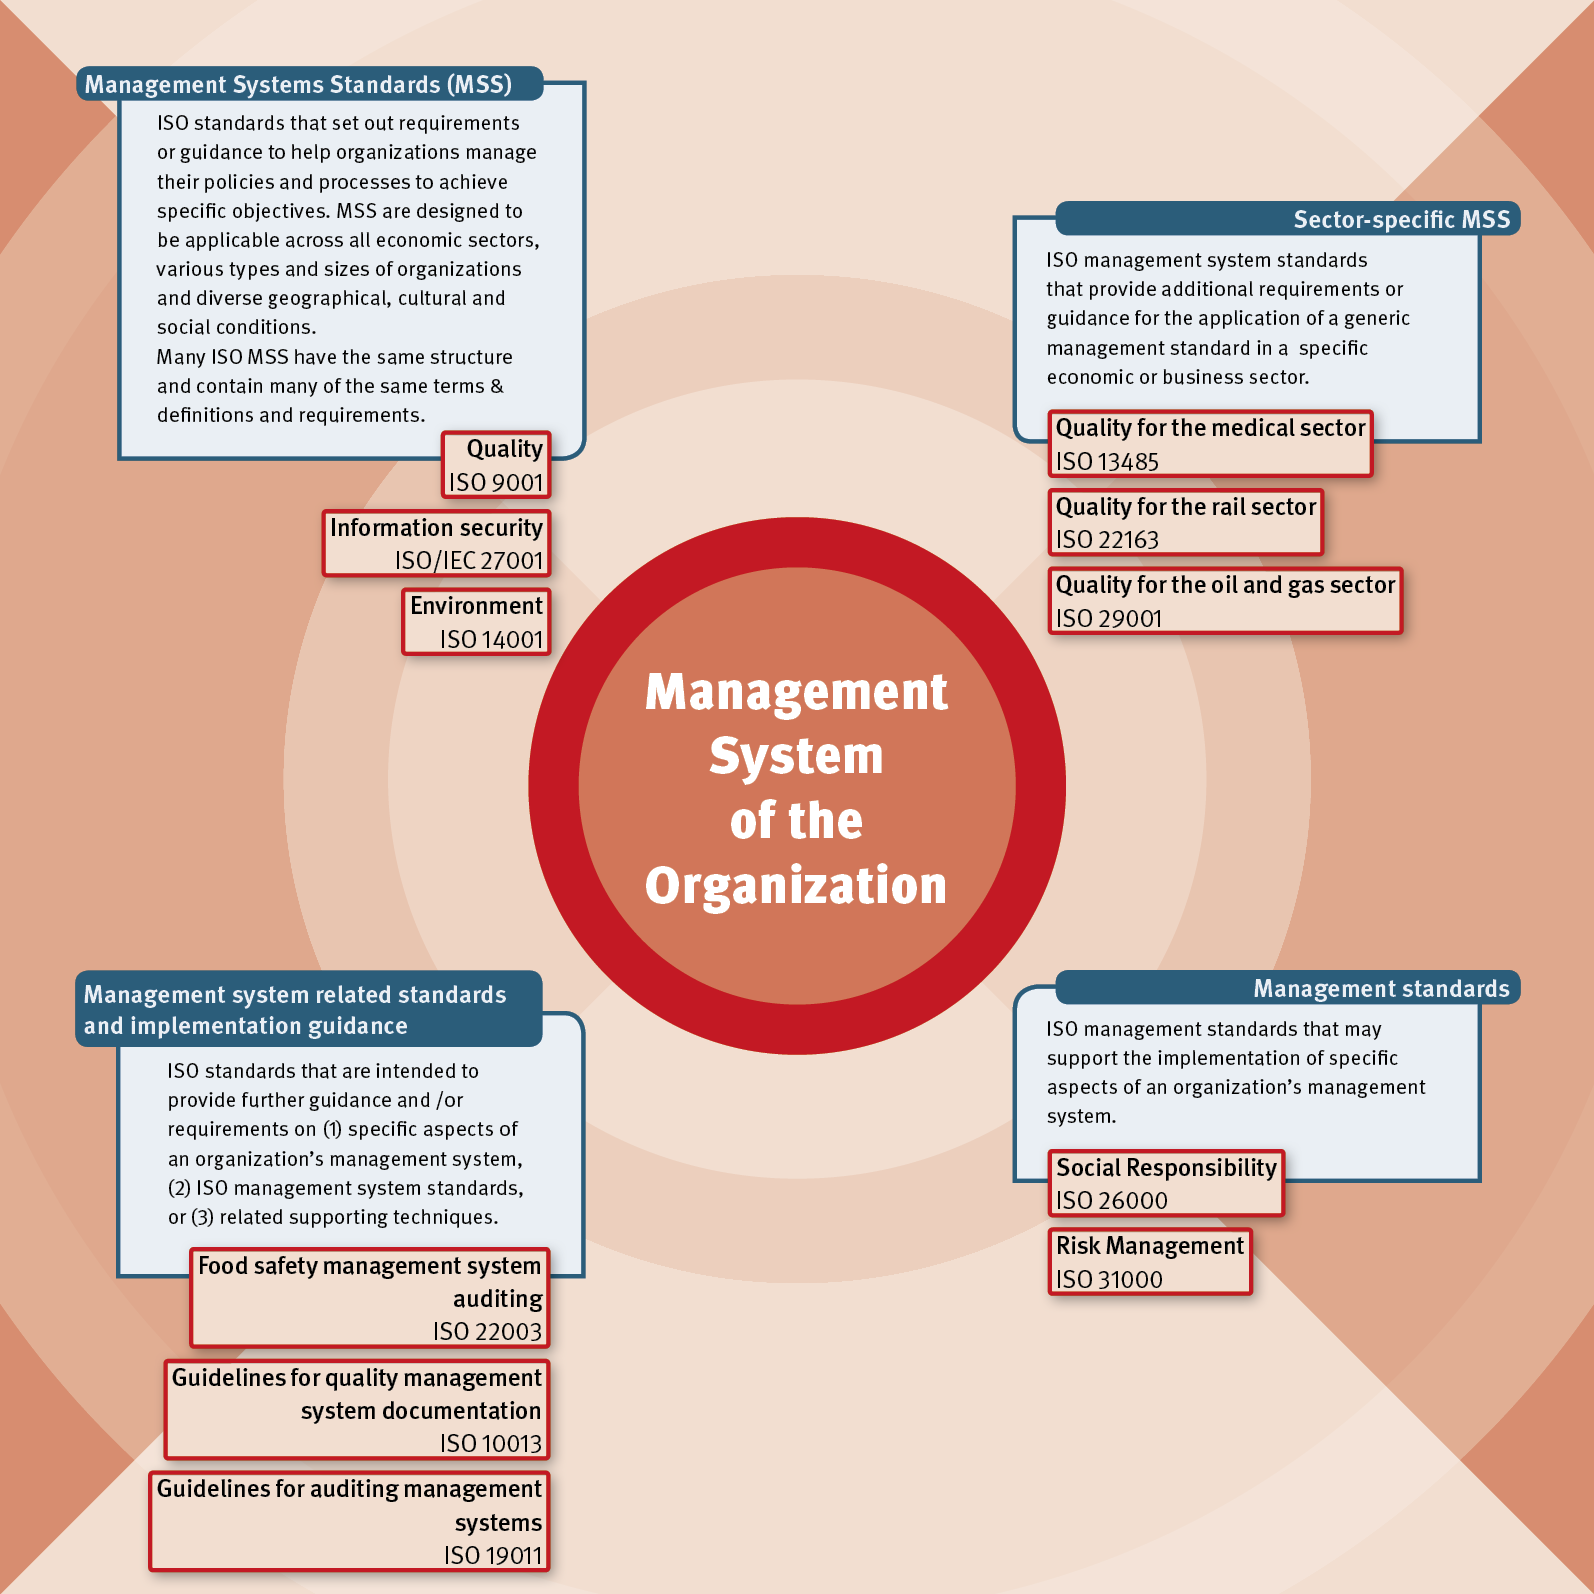 Management standards management systems standards and related standards